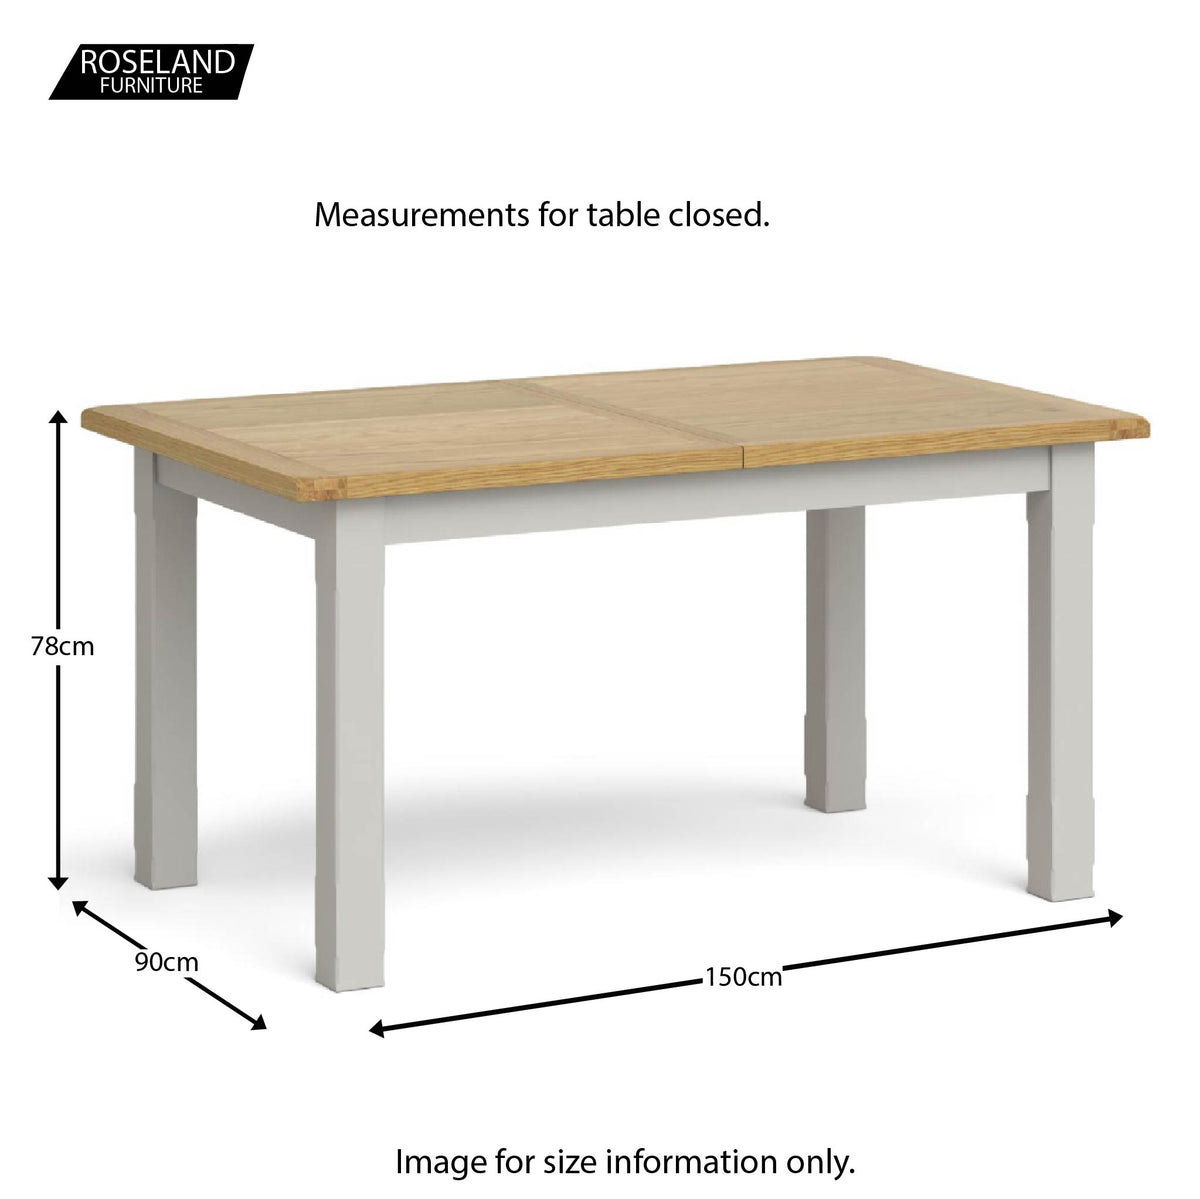 Lundy Grey Small Extending Oak Topped Dining Table - Closed size guide